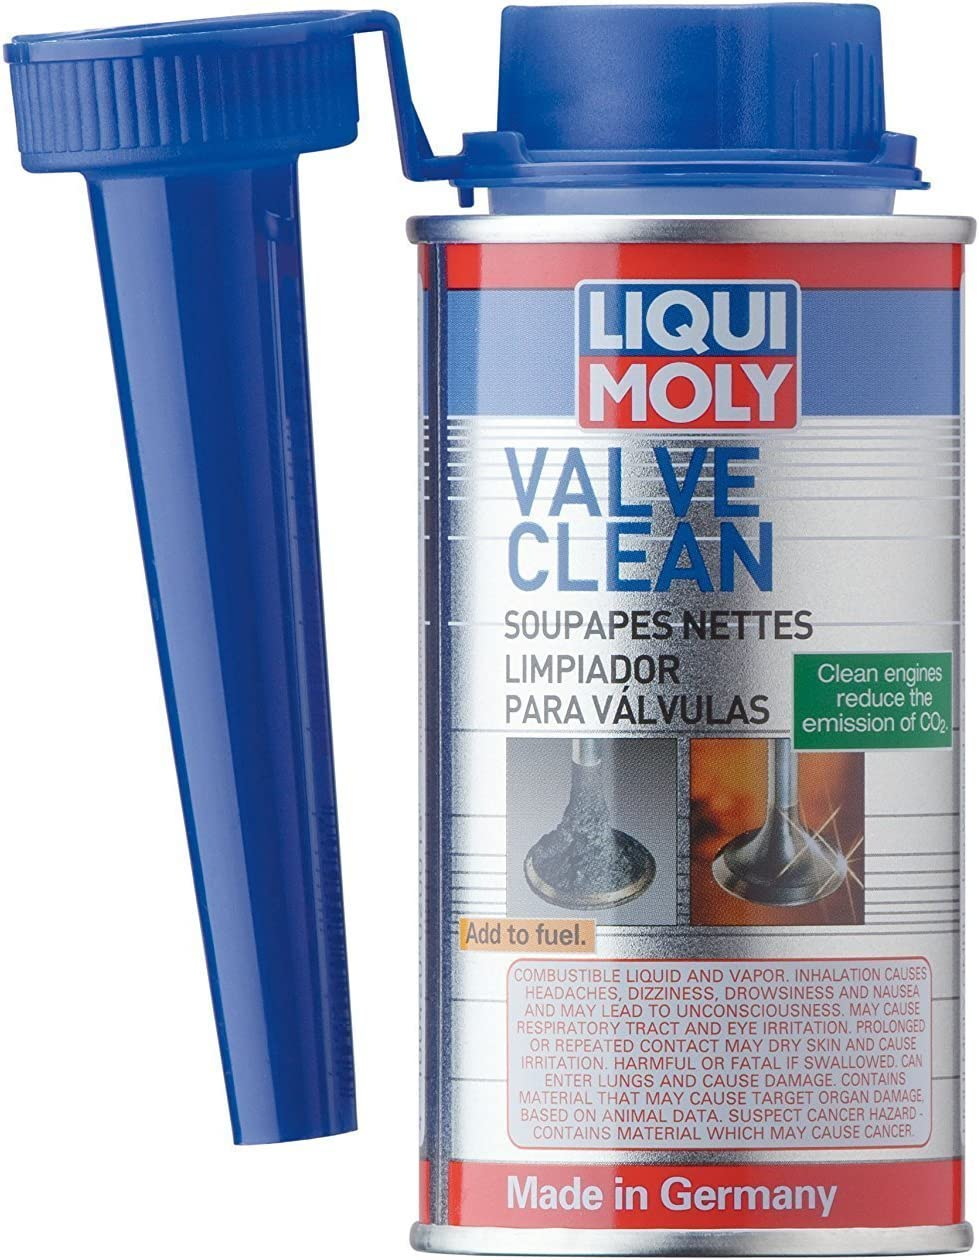 Sale Liqui Moly 2001-12PK Valve Clean - ml 150 12 New Free Shipping of Pack